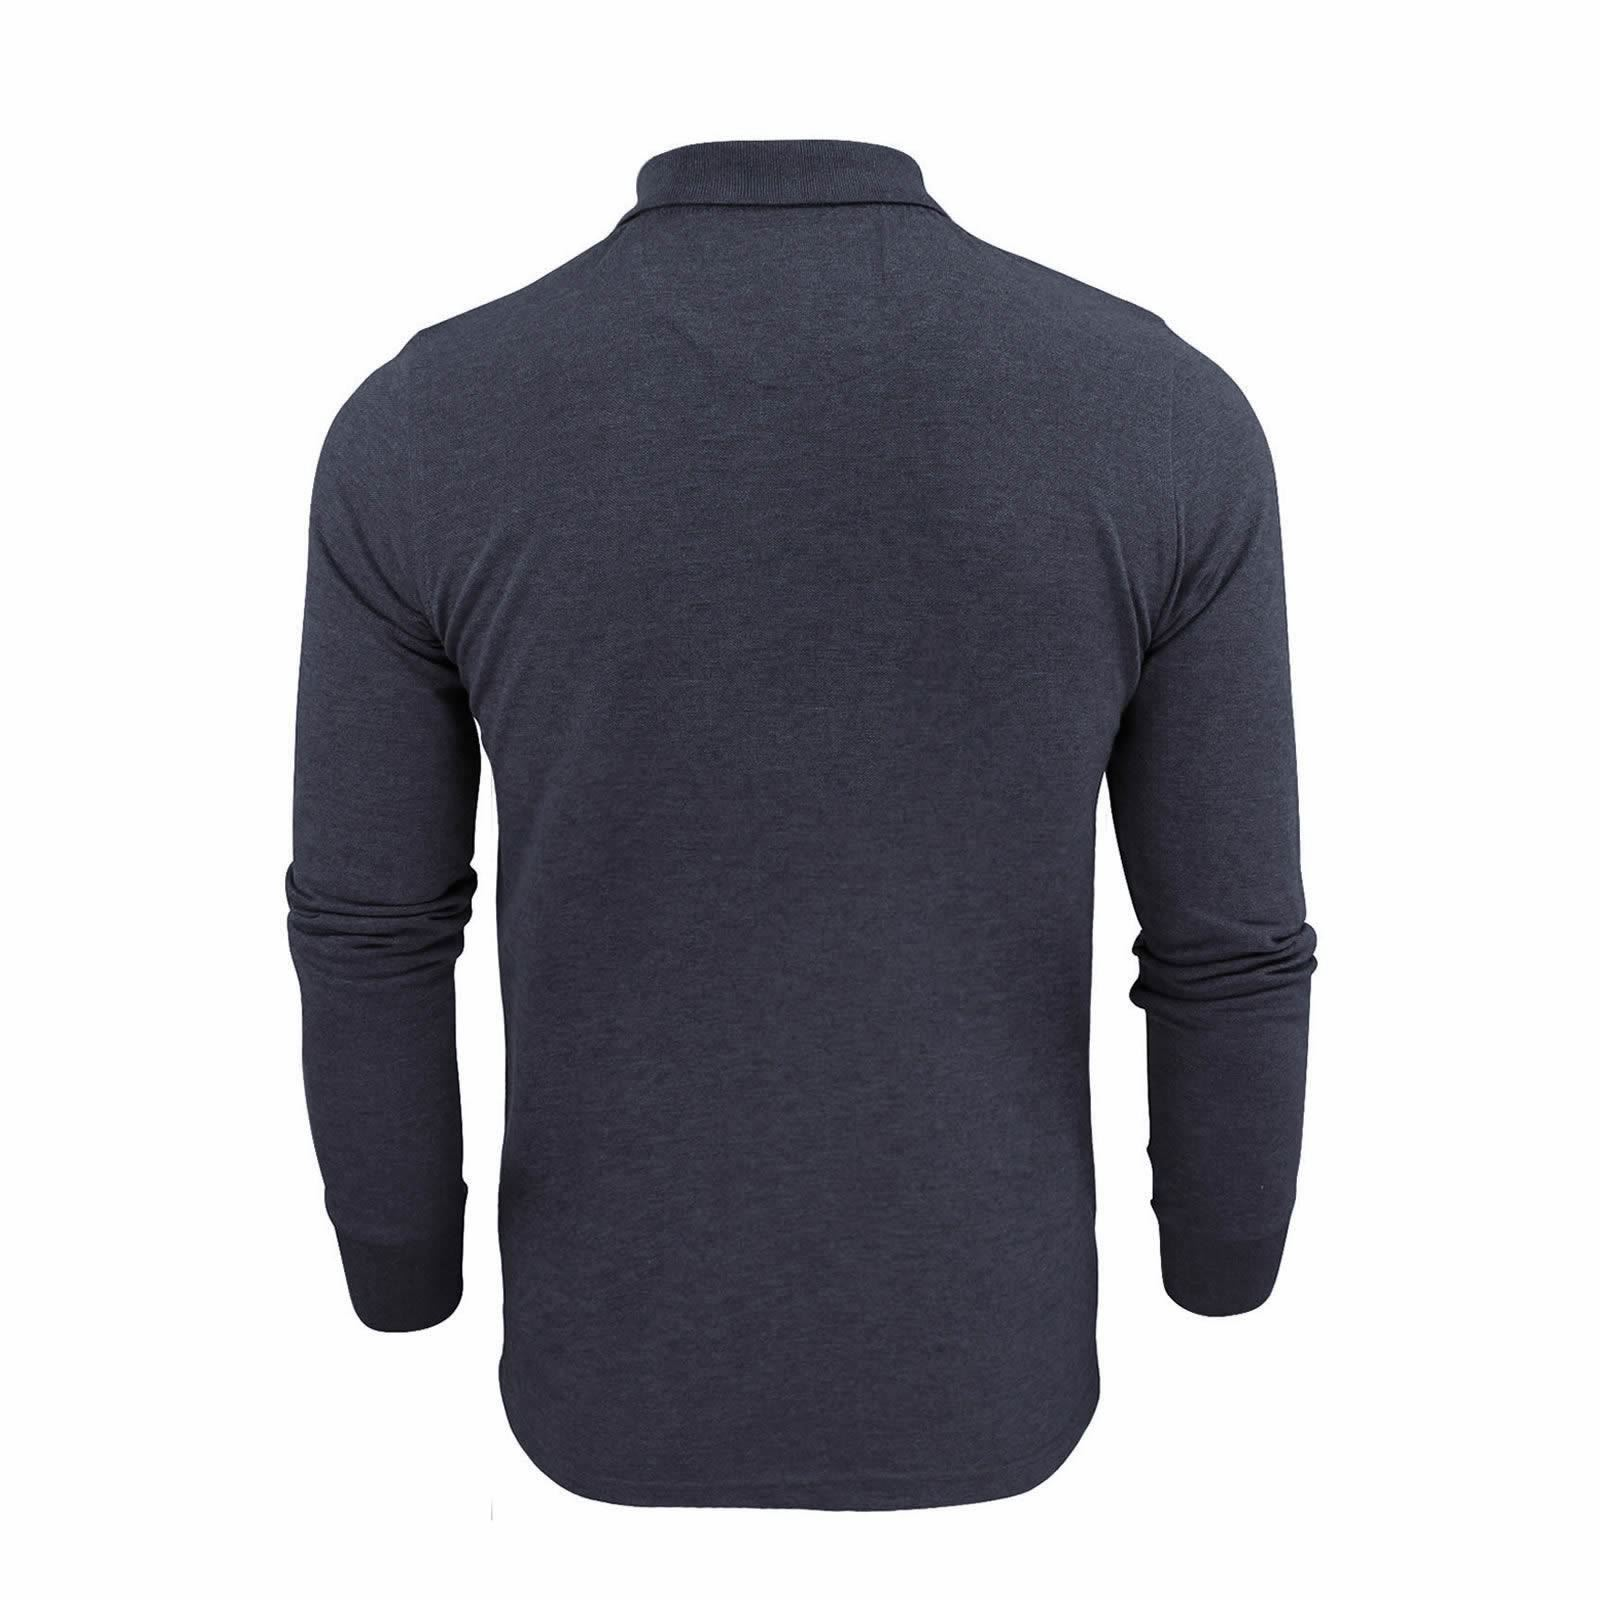 Mens-Polo-Shirt-Brave-Soul-Long-Sleeve-Collared-Top-In-Various-Styles thumbnail 74